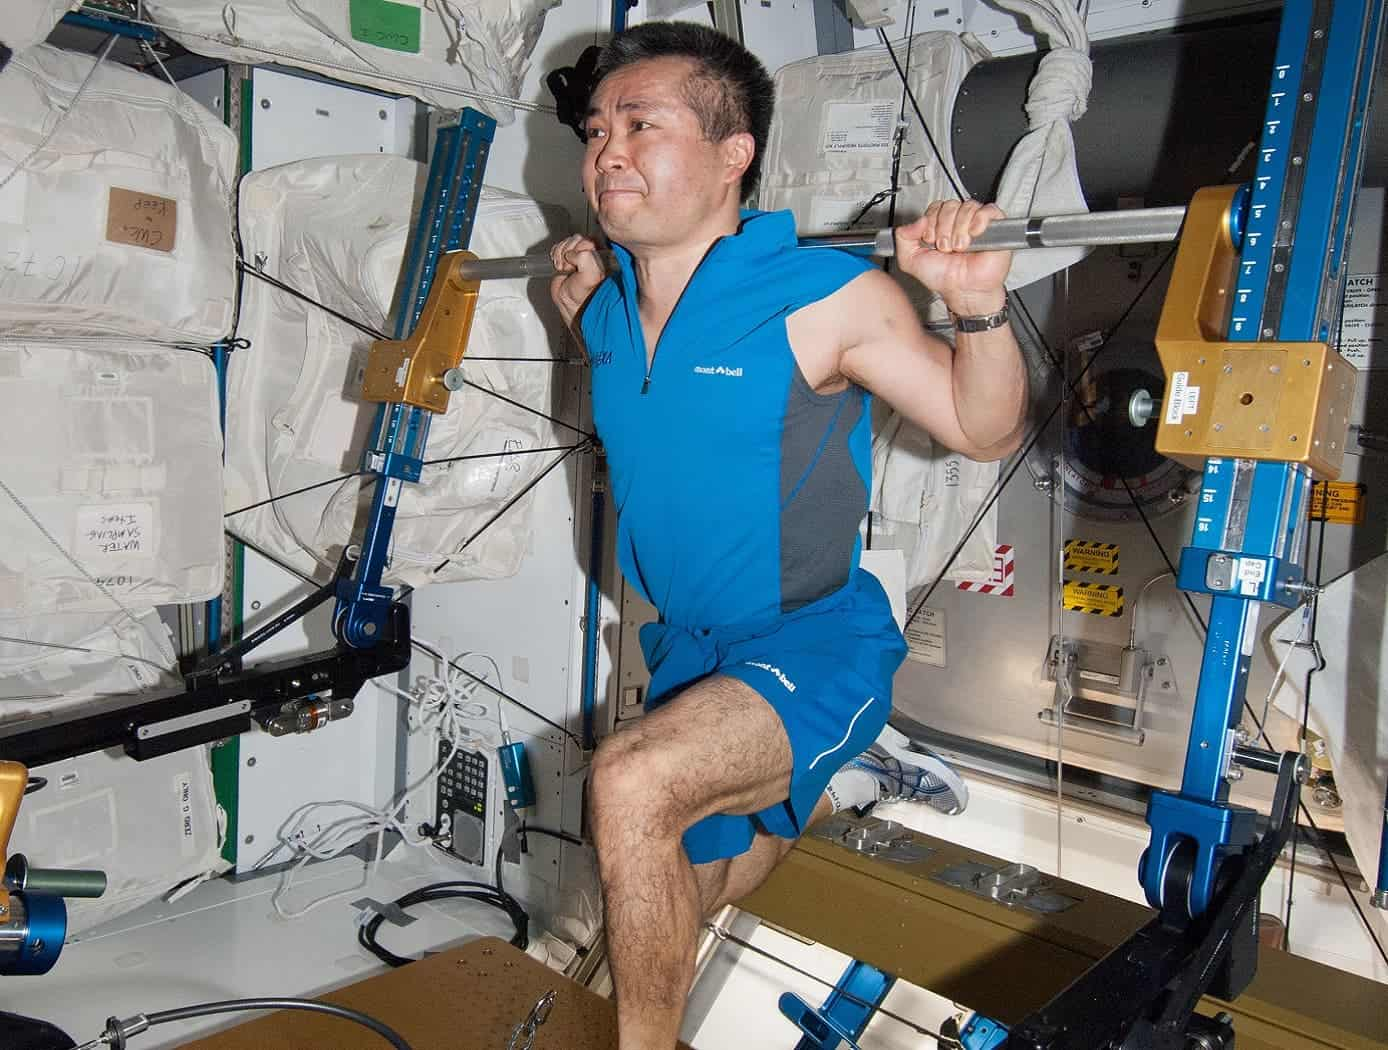 astronauts after being in space - photo #28